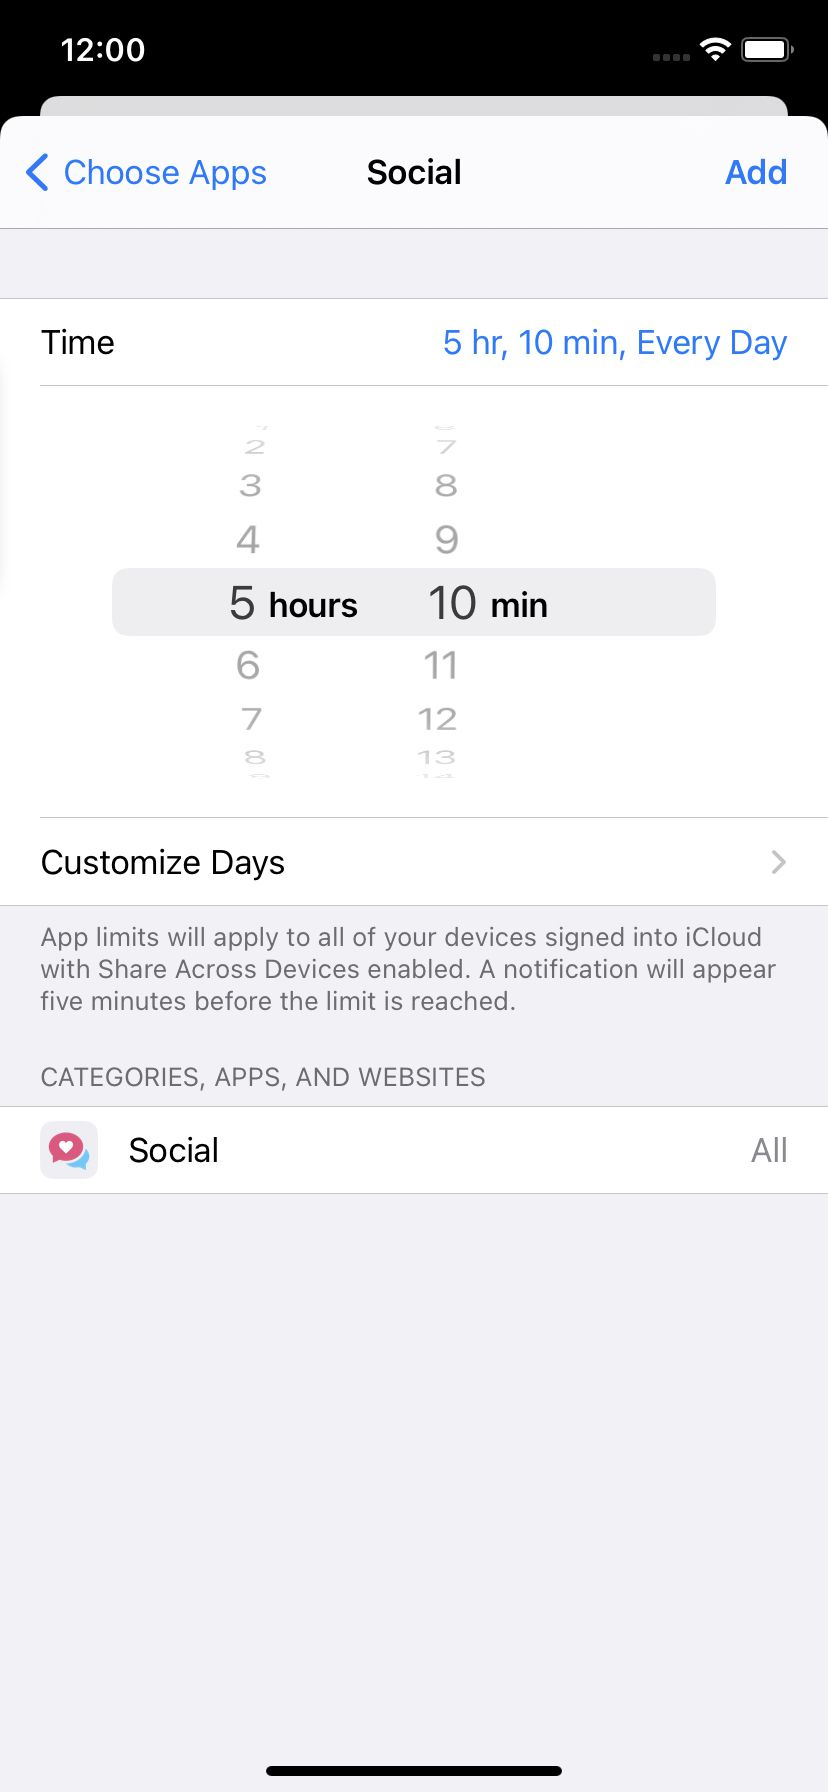 Choose how much time you want to spend on an app